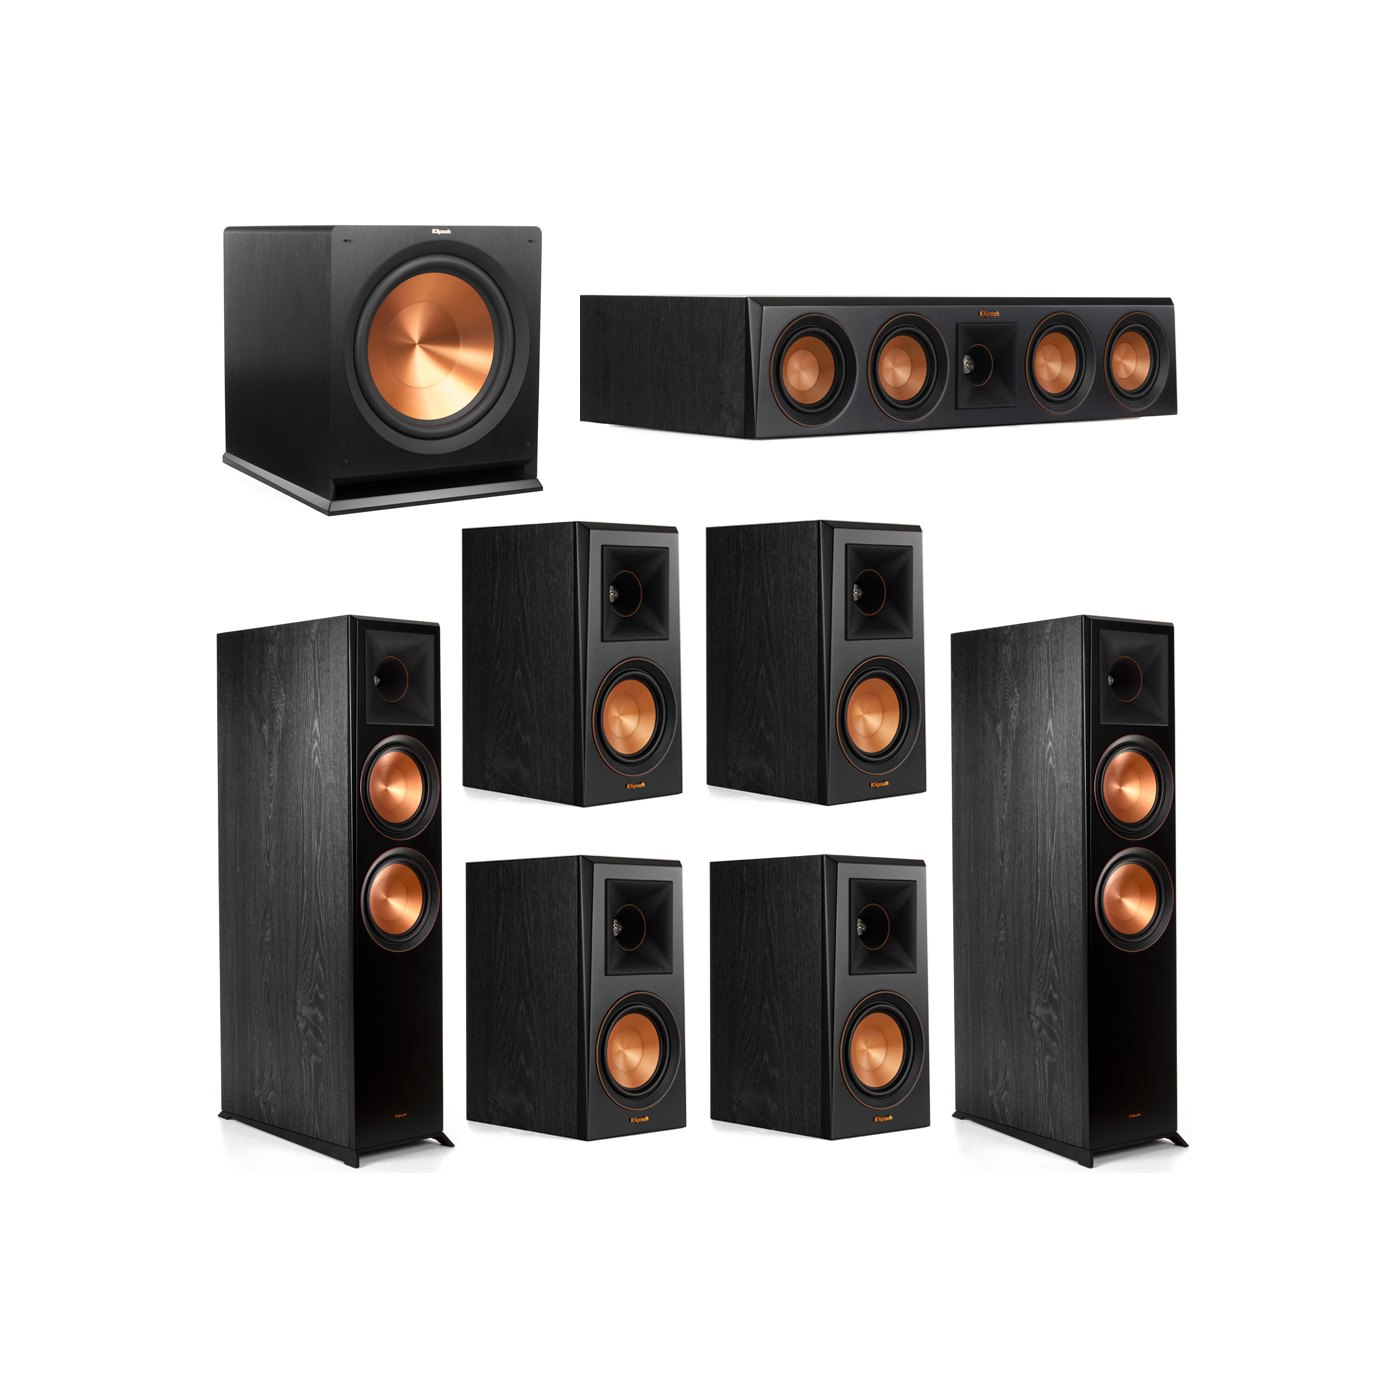 Klipsch 7.1 System with 2 RP-8000F Floorstanding Speakers, 1 Klipsch RP-404C Center Speaker, 4 Klipsch RP-500M Surround Speakers, 1 Klipsch R-115SW Subwoofer